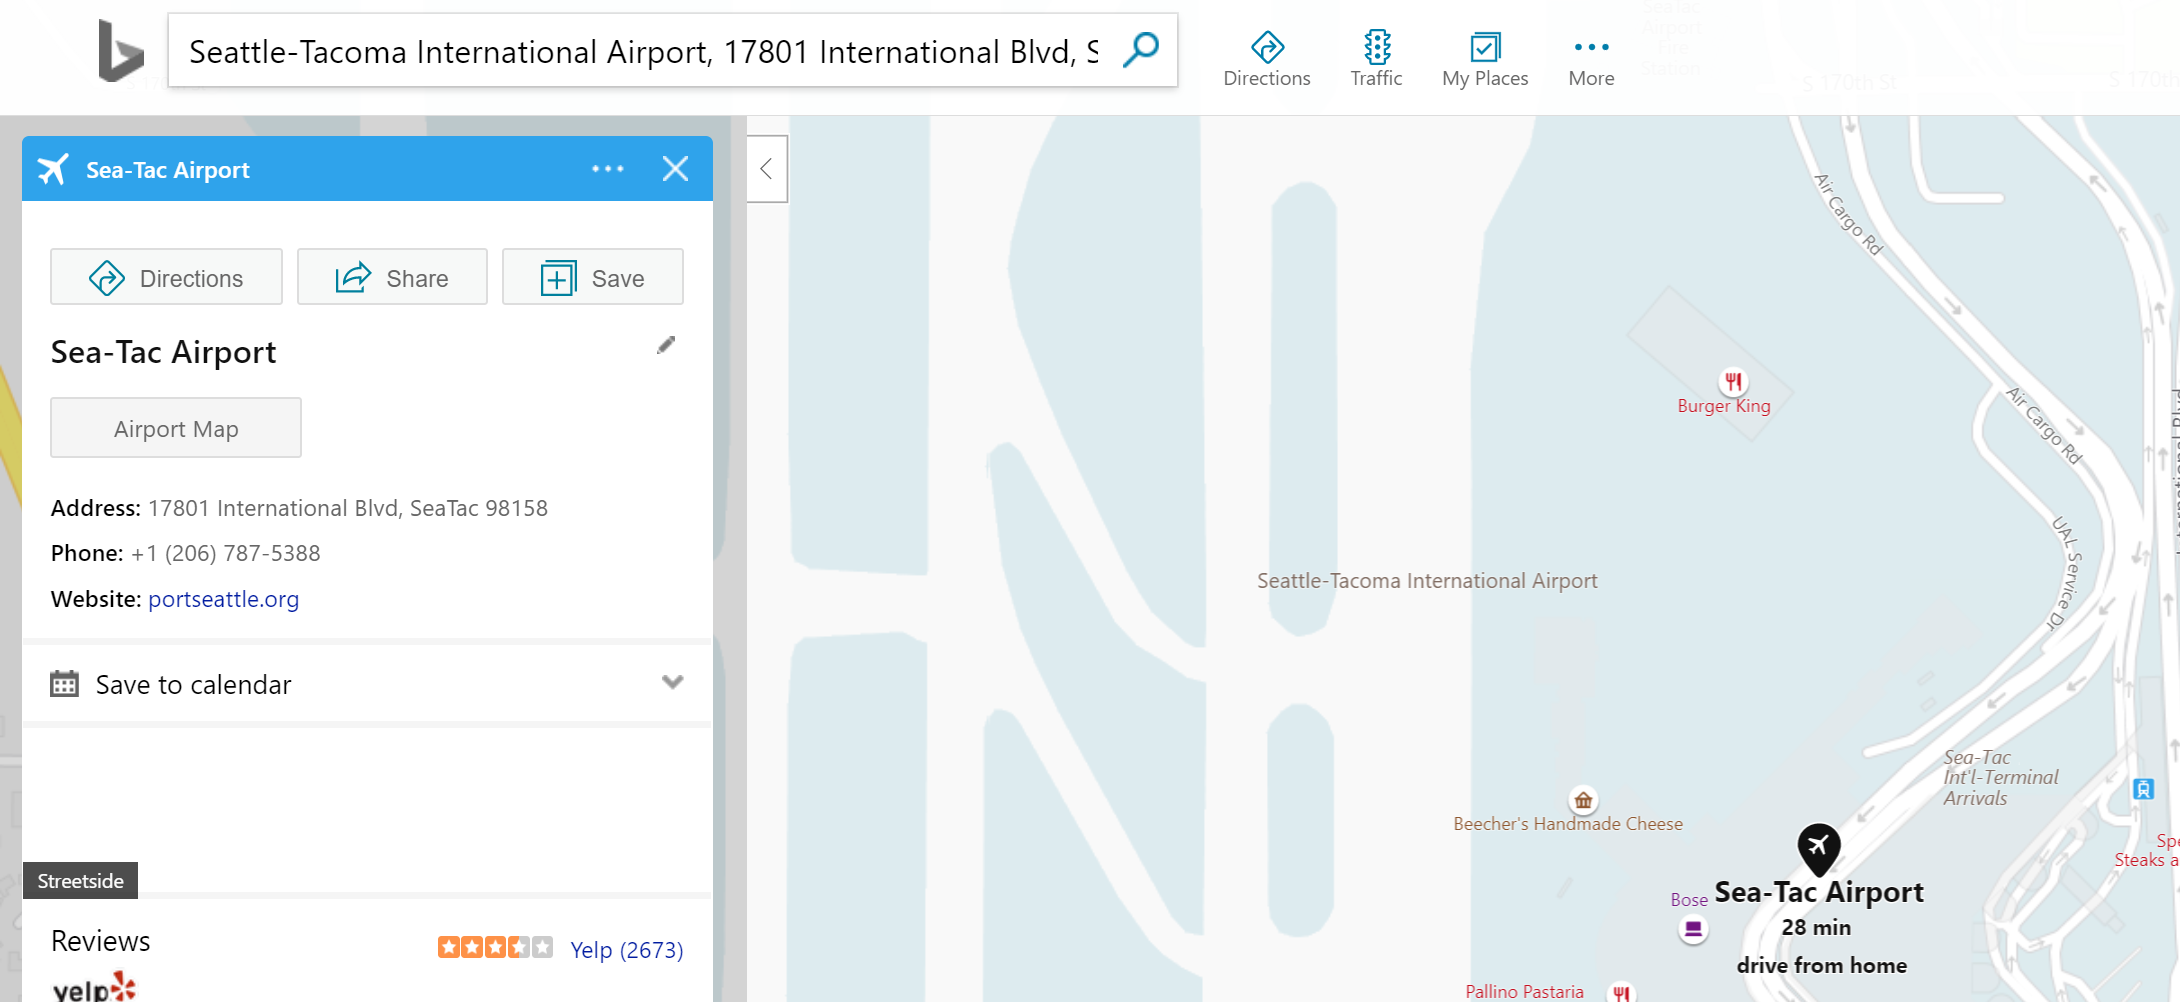 Recent Searches Now Available in Bing Maps Autosuggest | Maps Blog